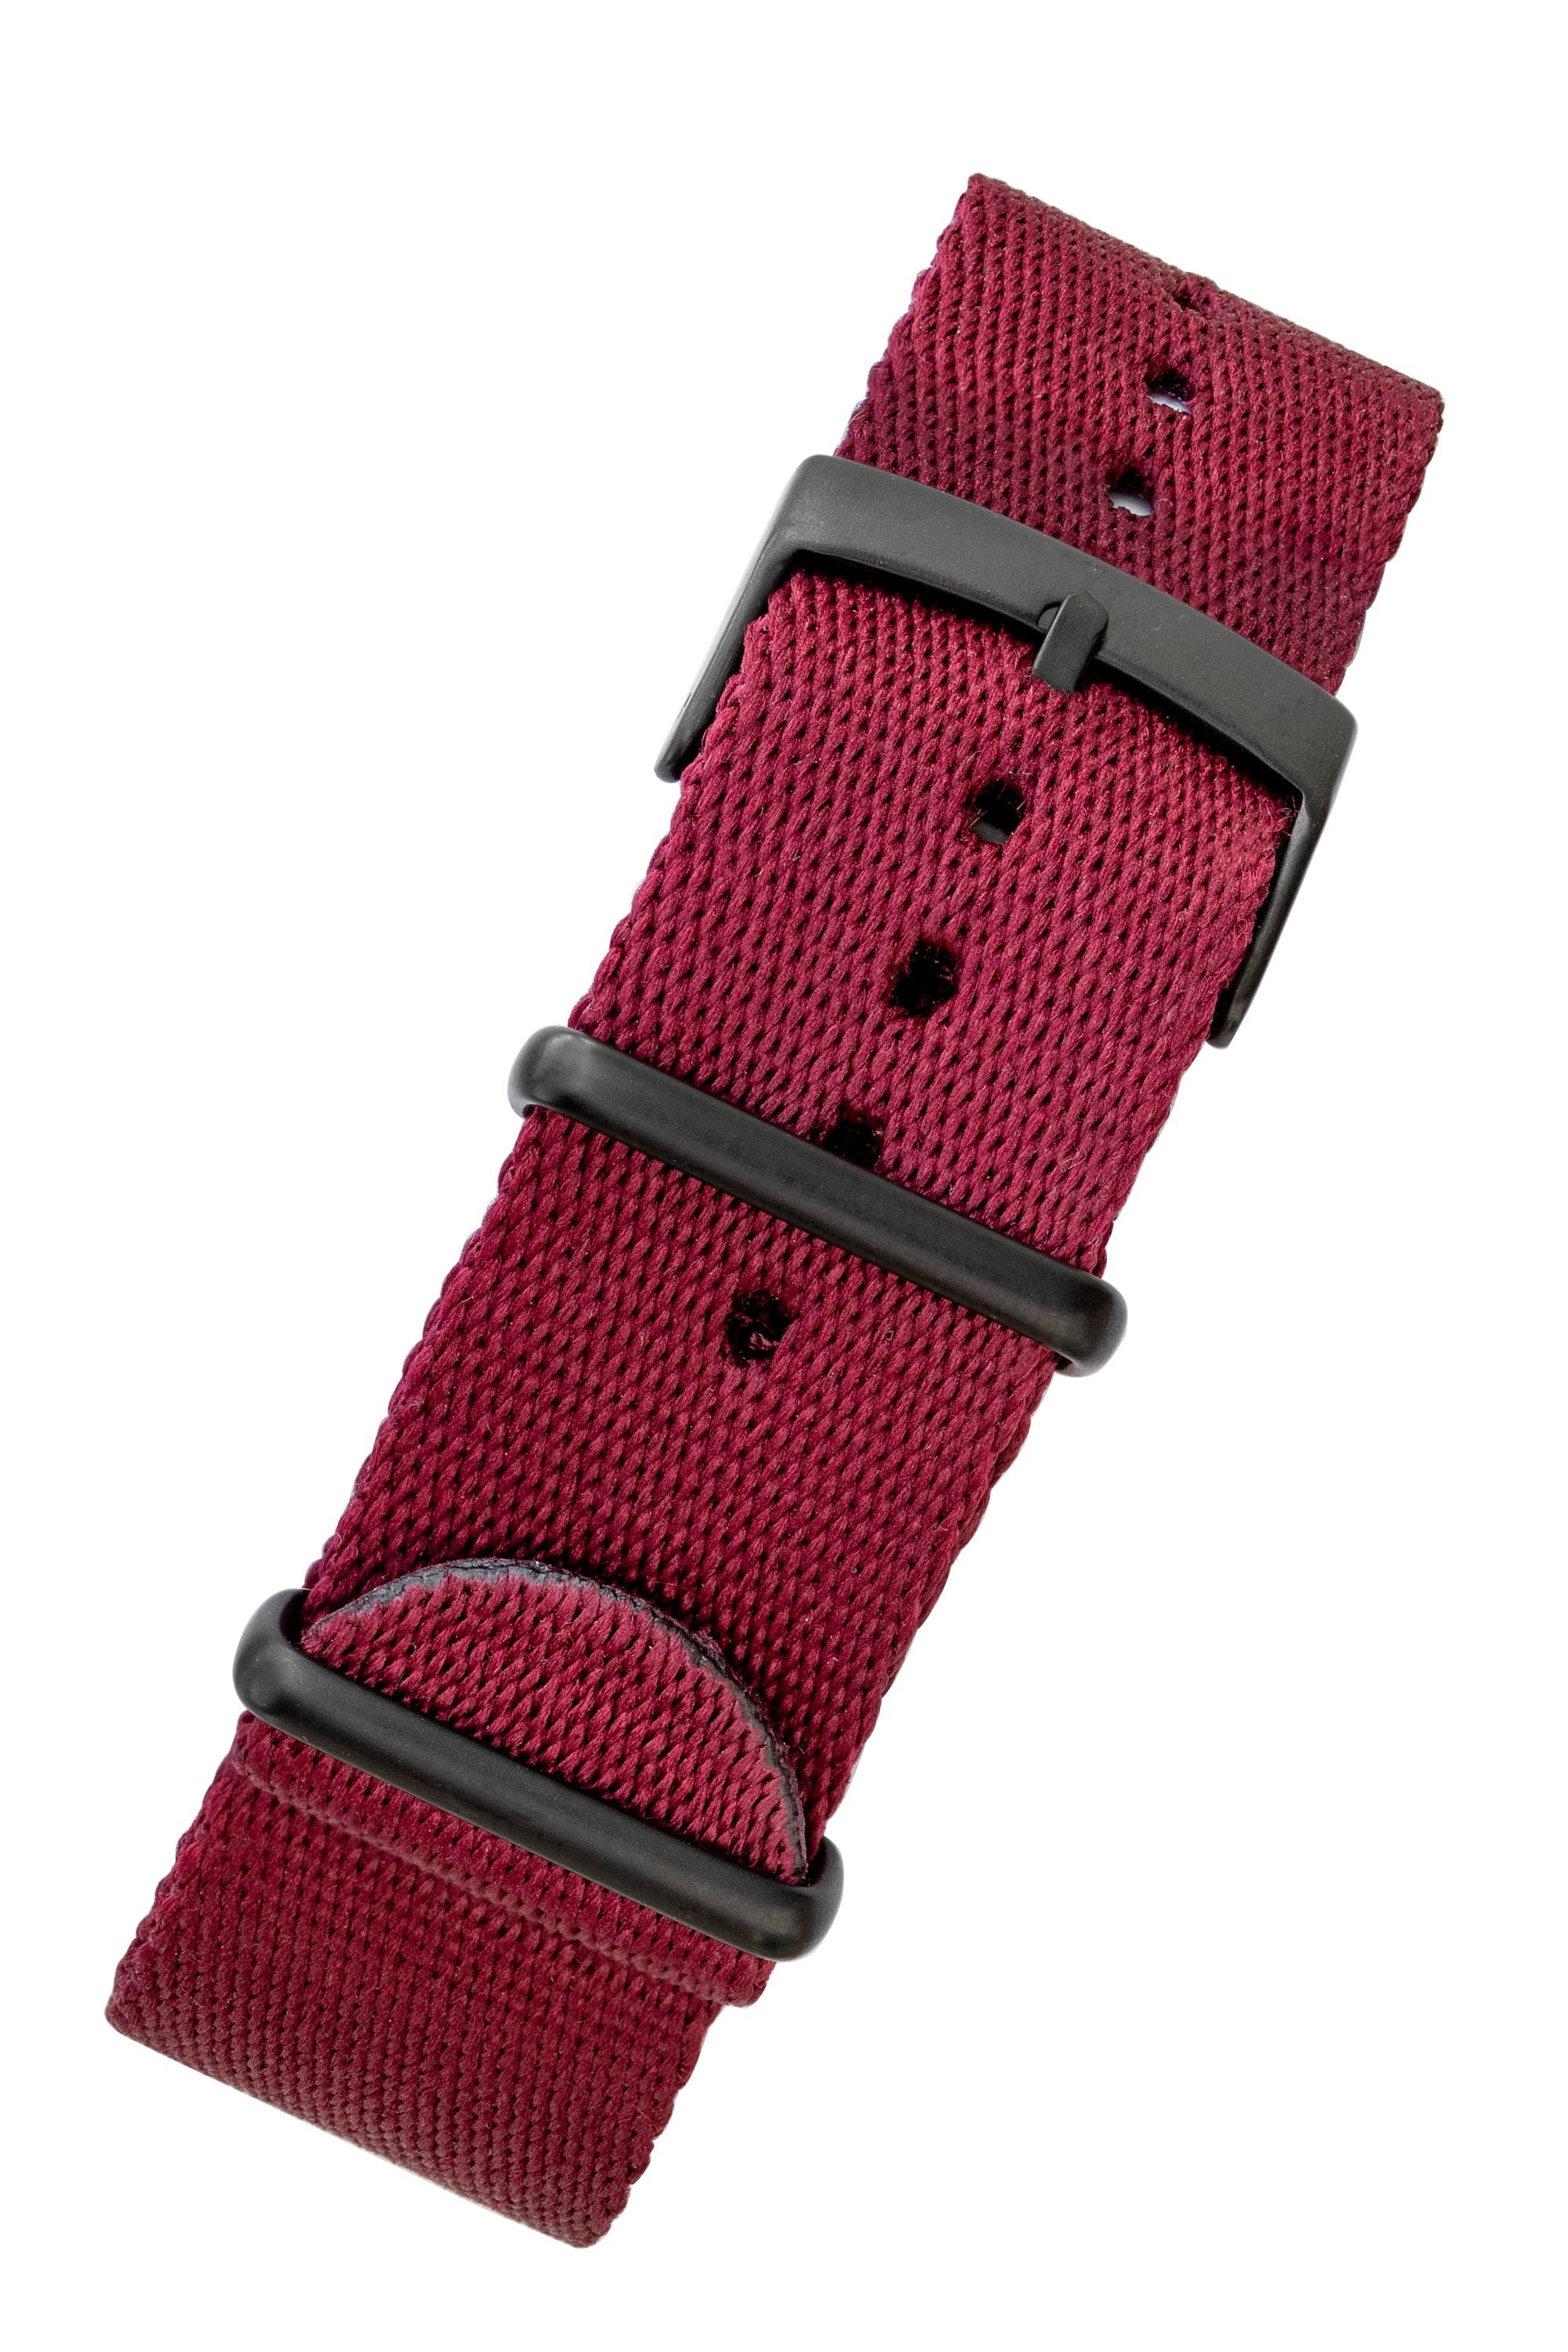 Premium NATO Watch Strap in BURGUNDY with Black PVD Hardware